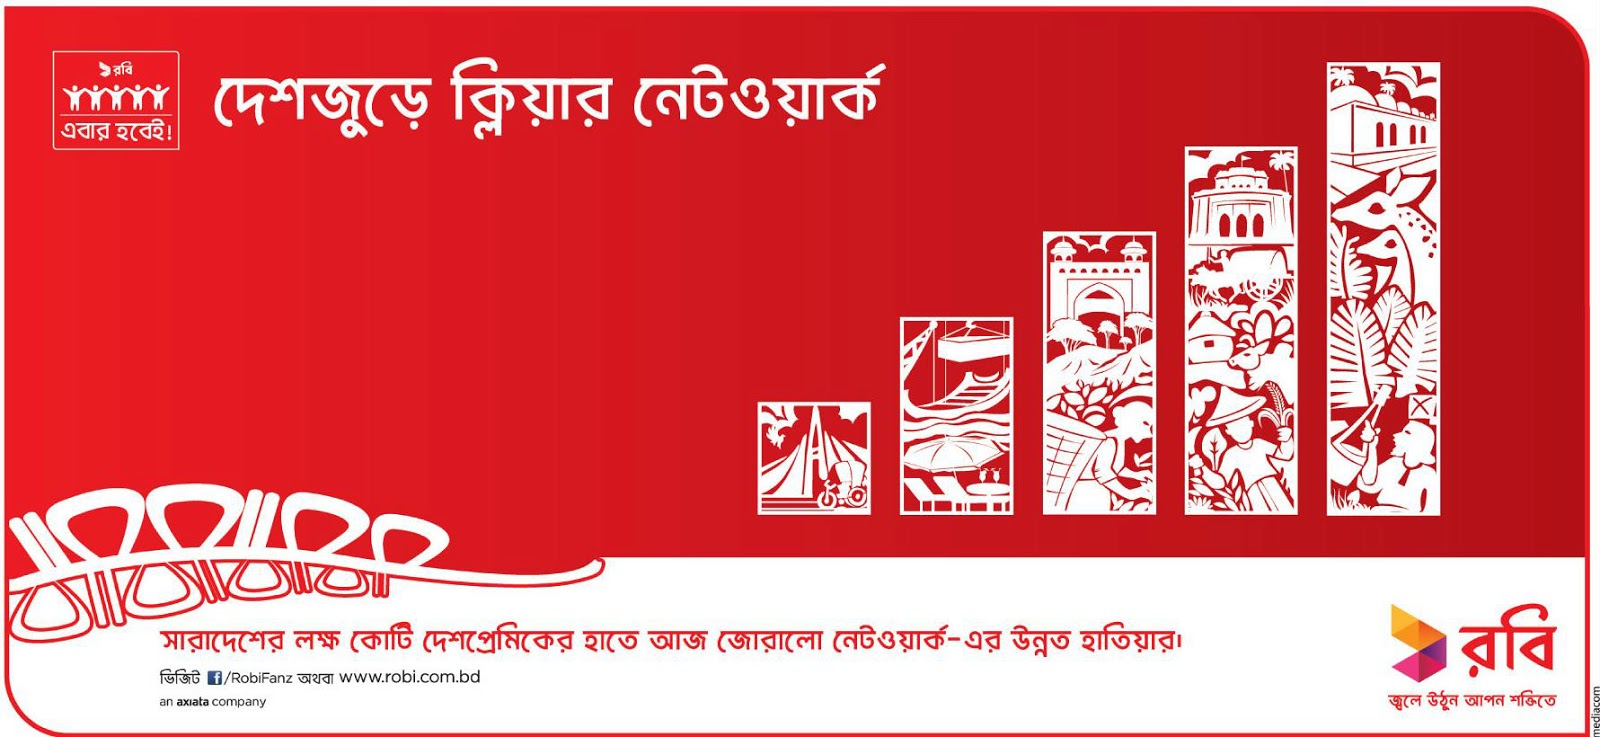 Advertising Archive Bangladesh: Robi